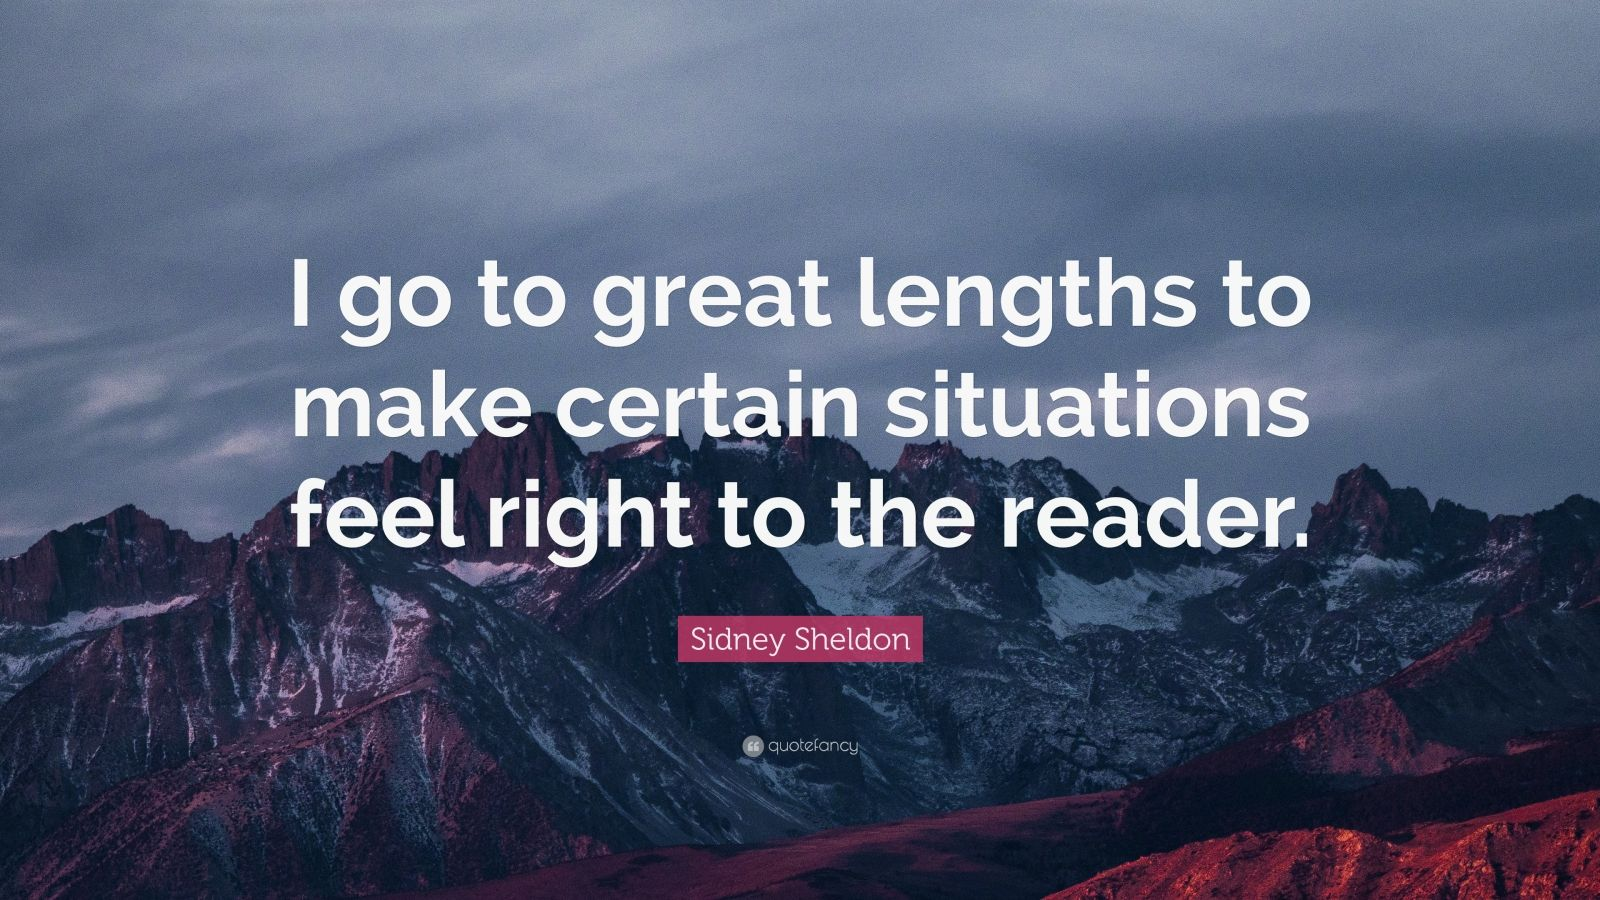 """Sidney Sheldon Quote: """"I go to great lengths to make certain situations feel right to the reader."""""""